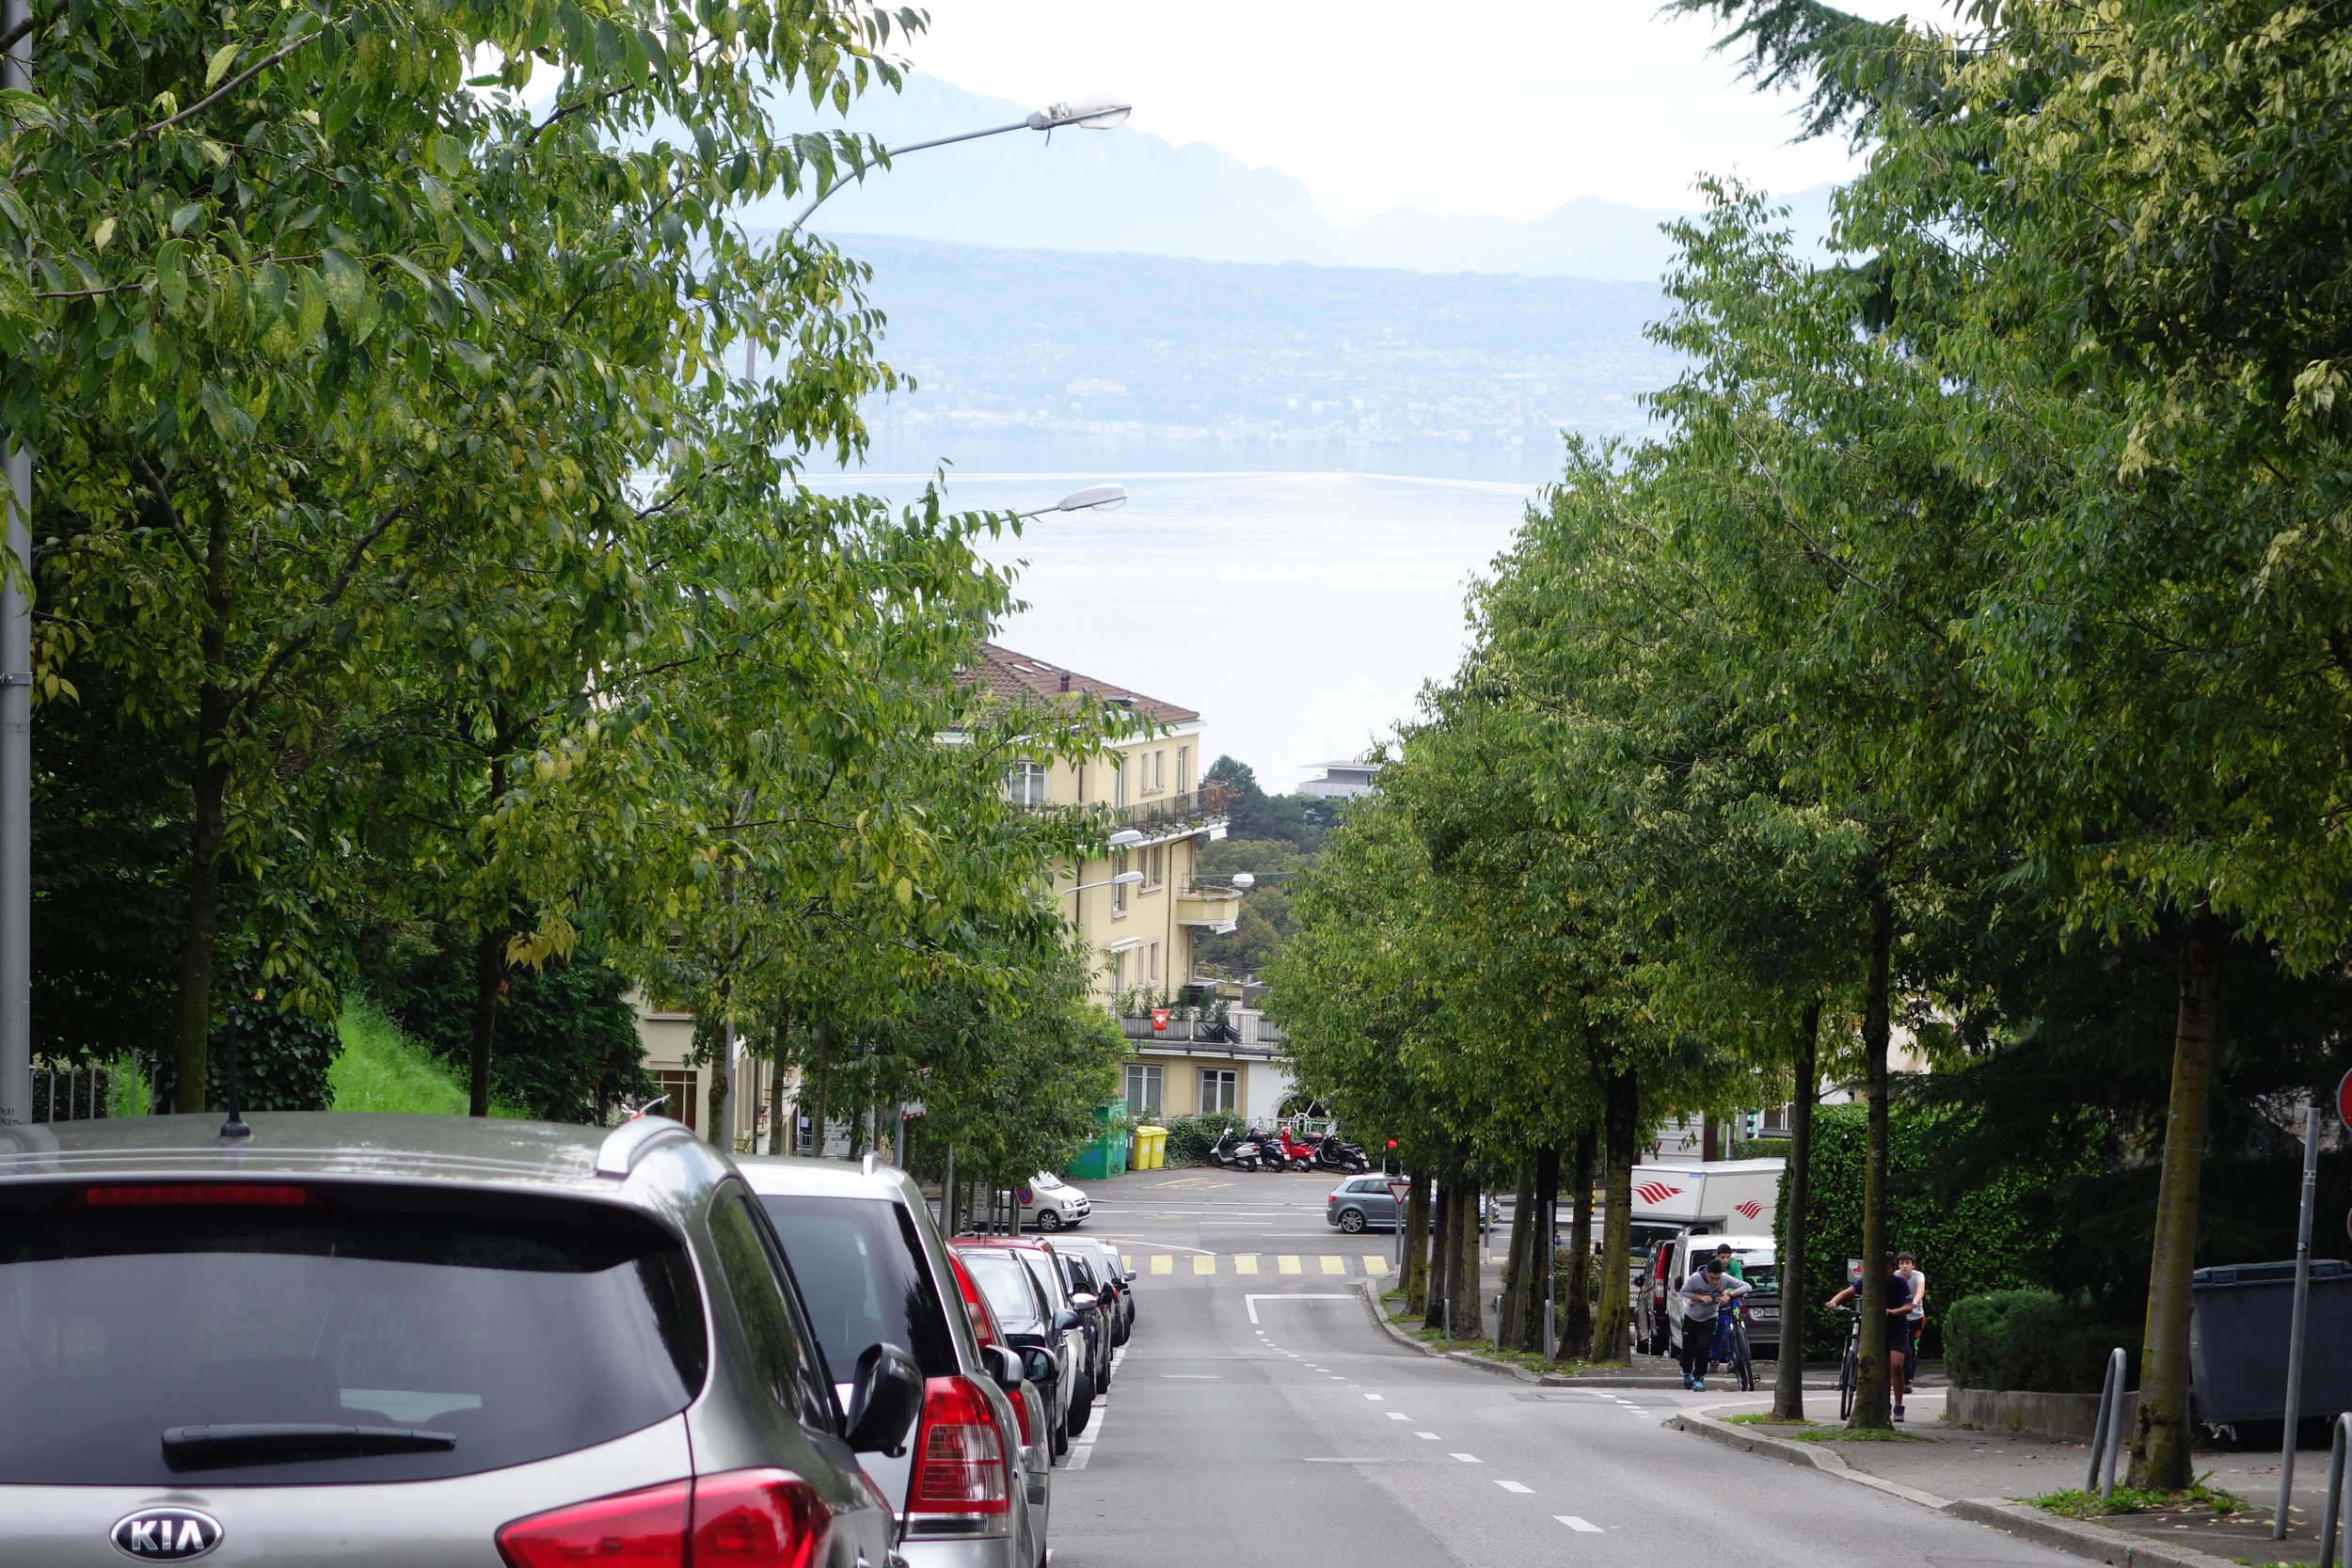 View of Lake Geneva from the right side of the building.